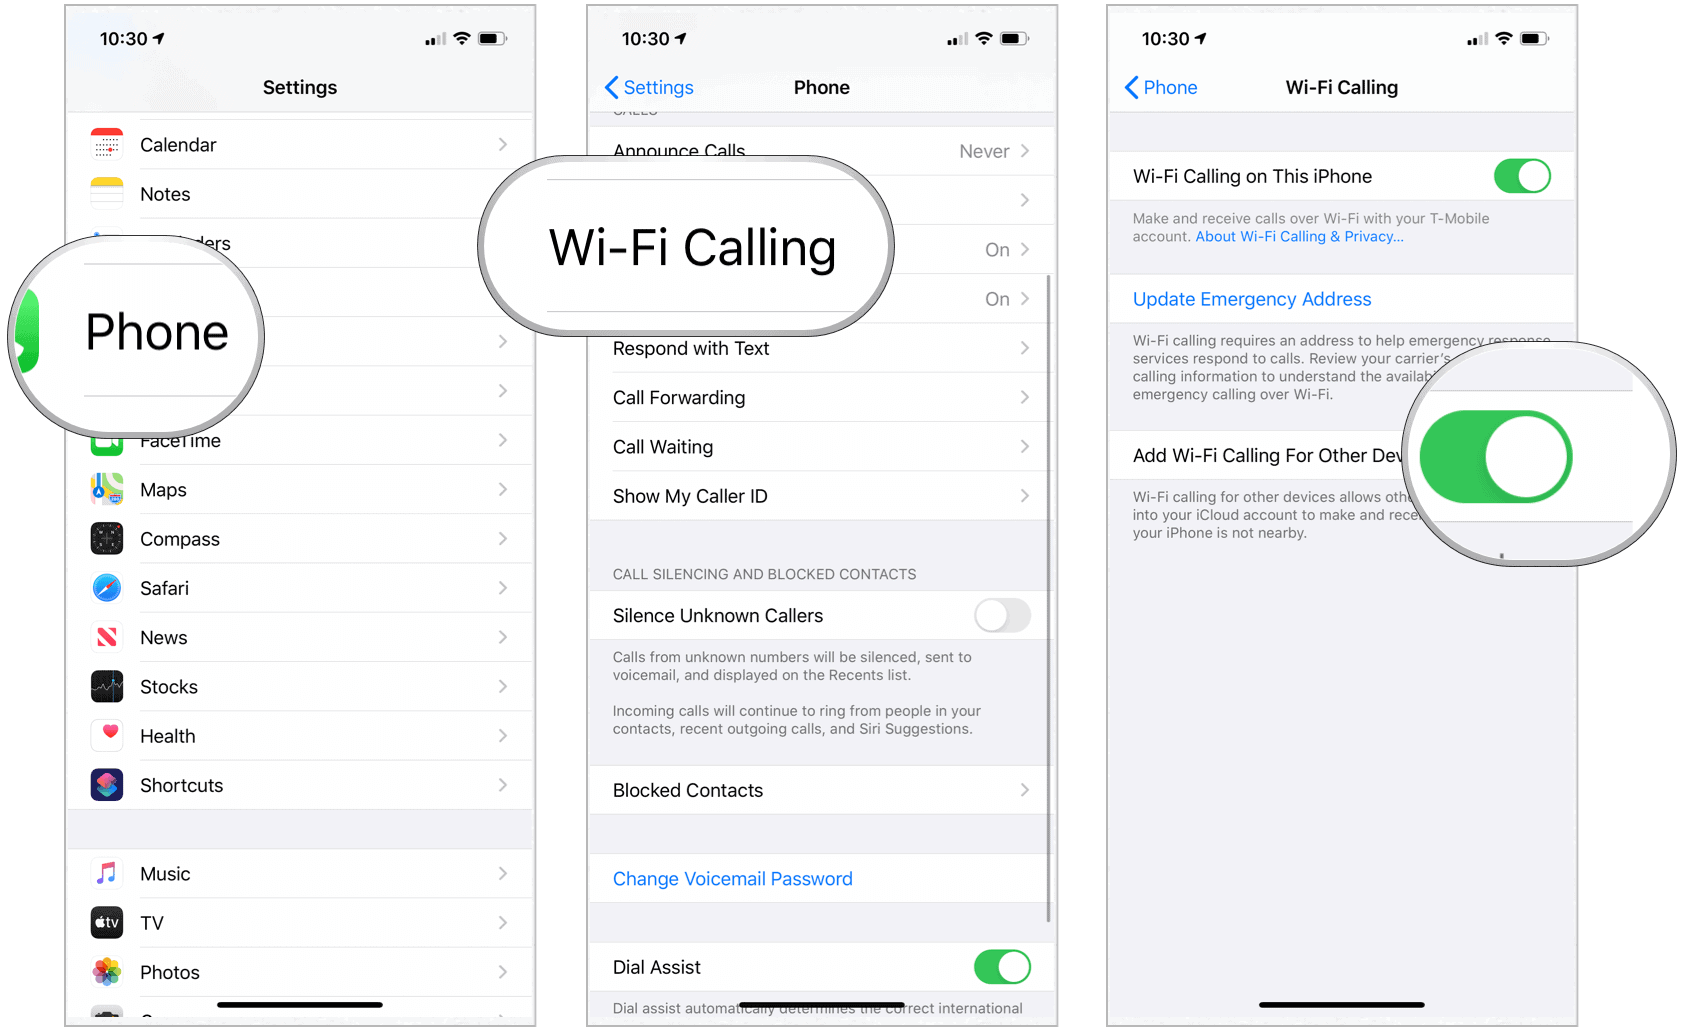 iPhone Wi-Fi Calling on Other Devices